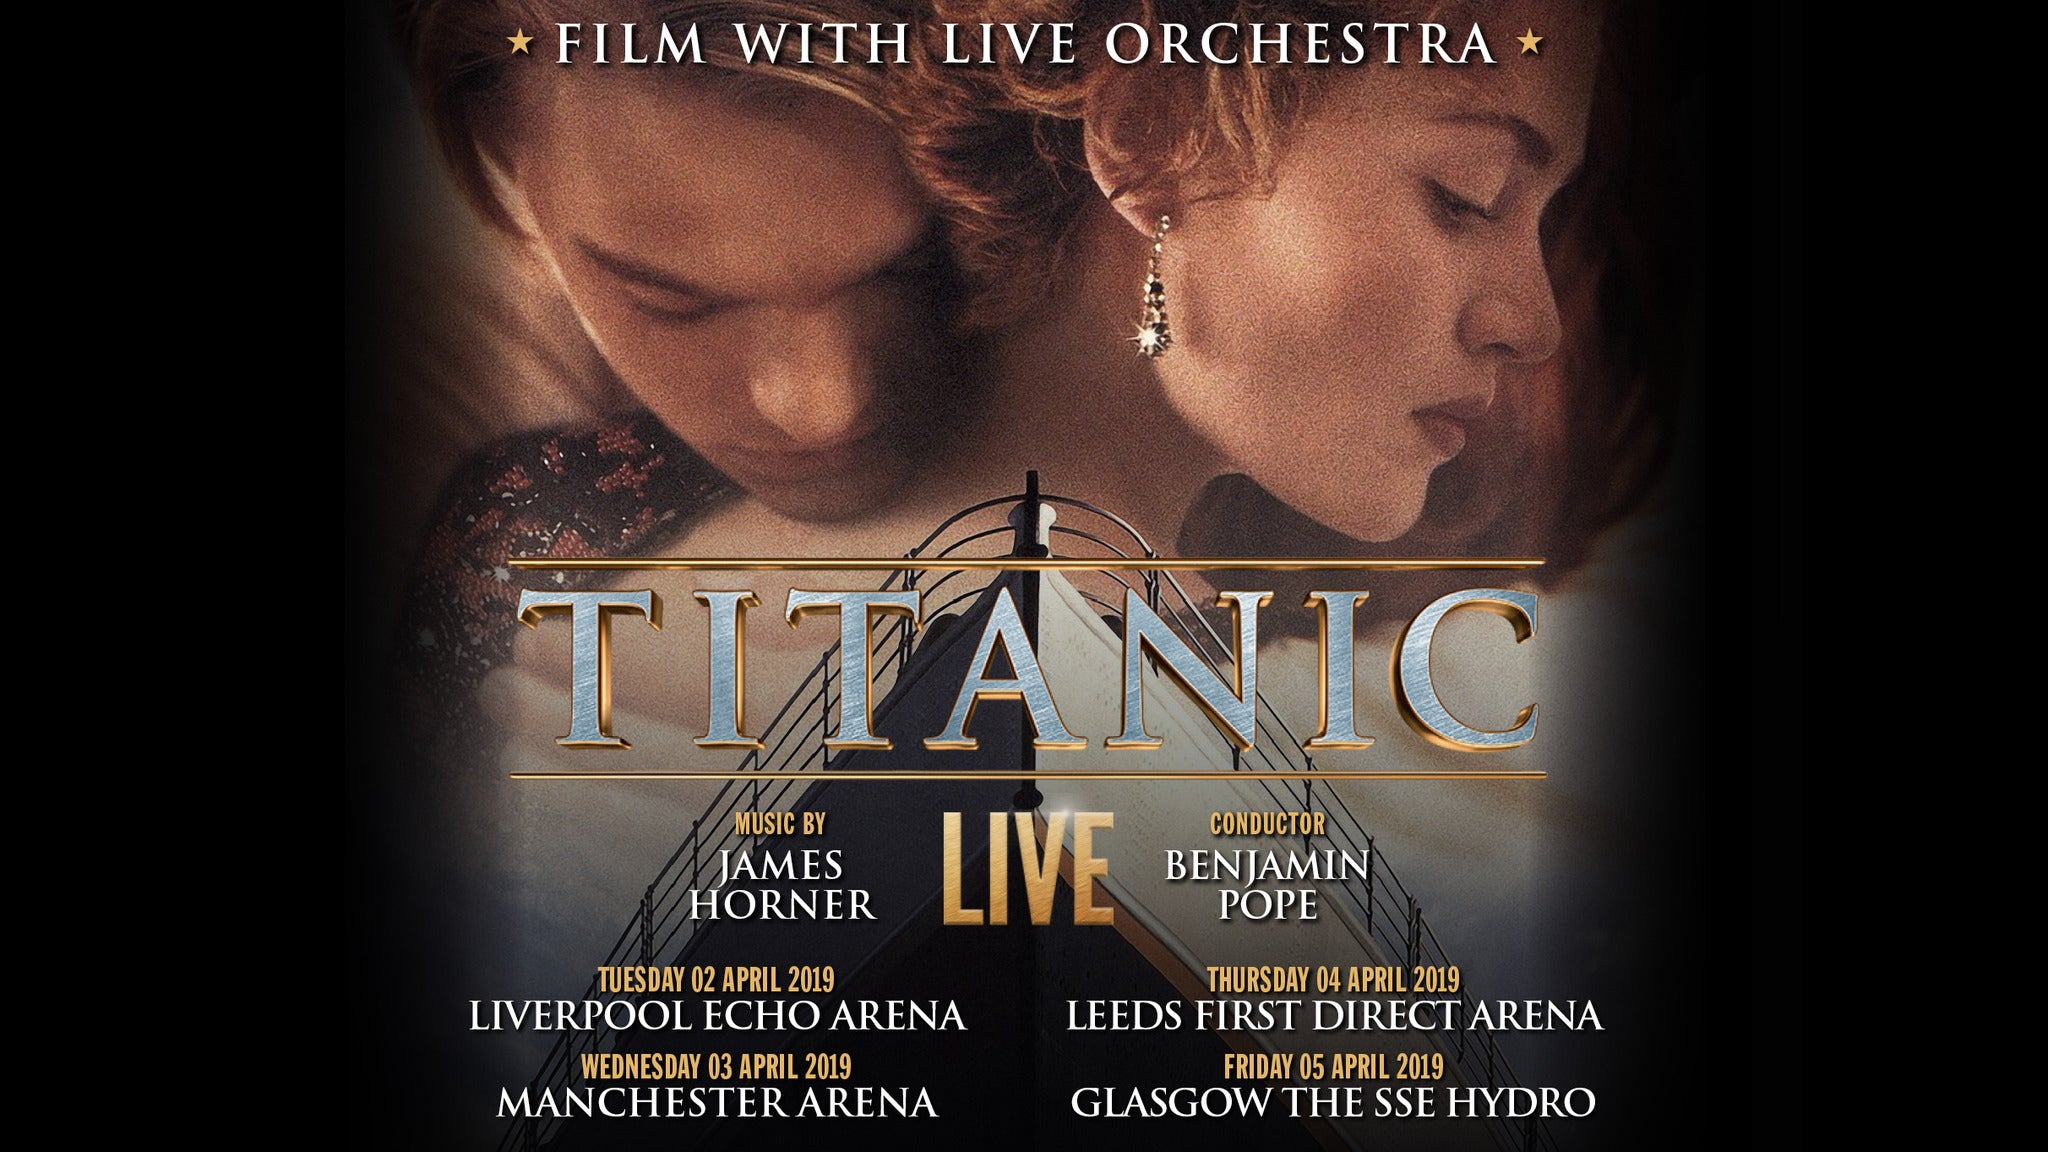 Titanic Live In Concert- Film with Live Orchestra and Choir First Direct Arena Seating Plan